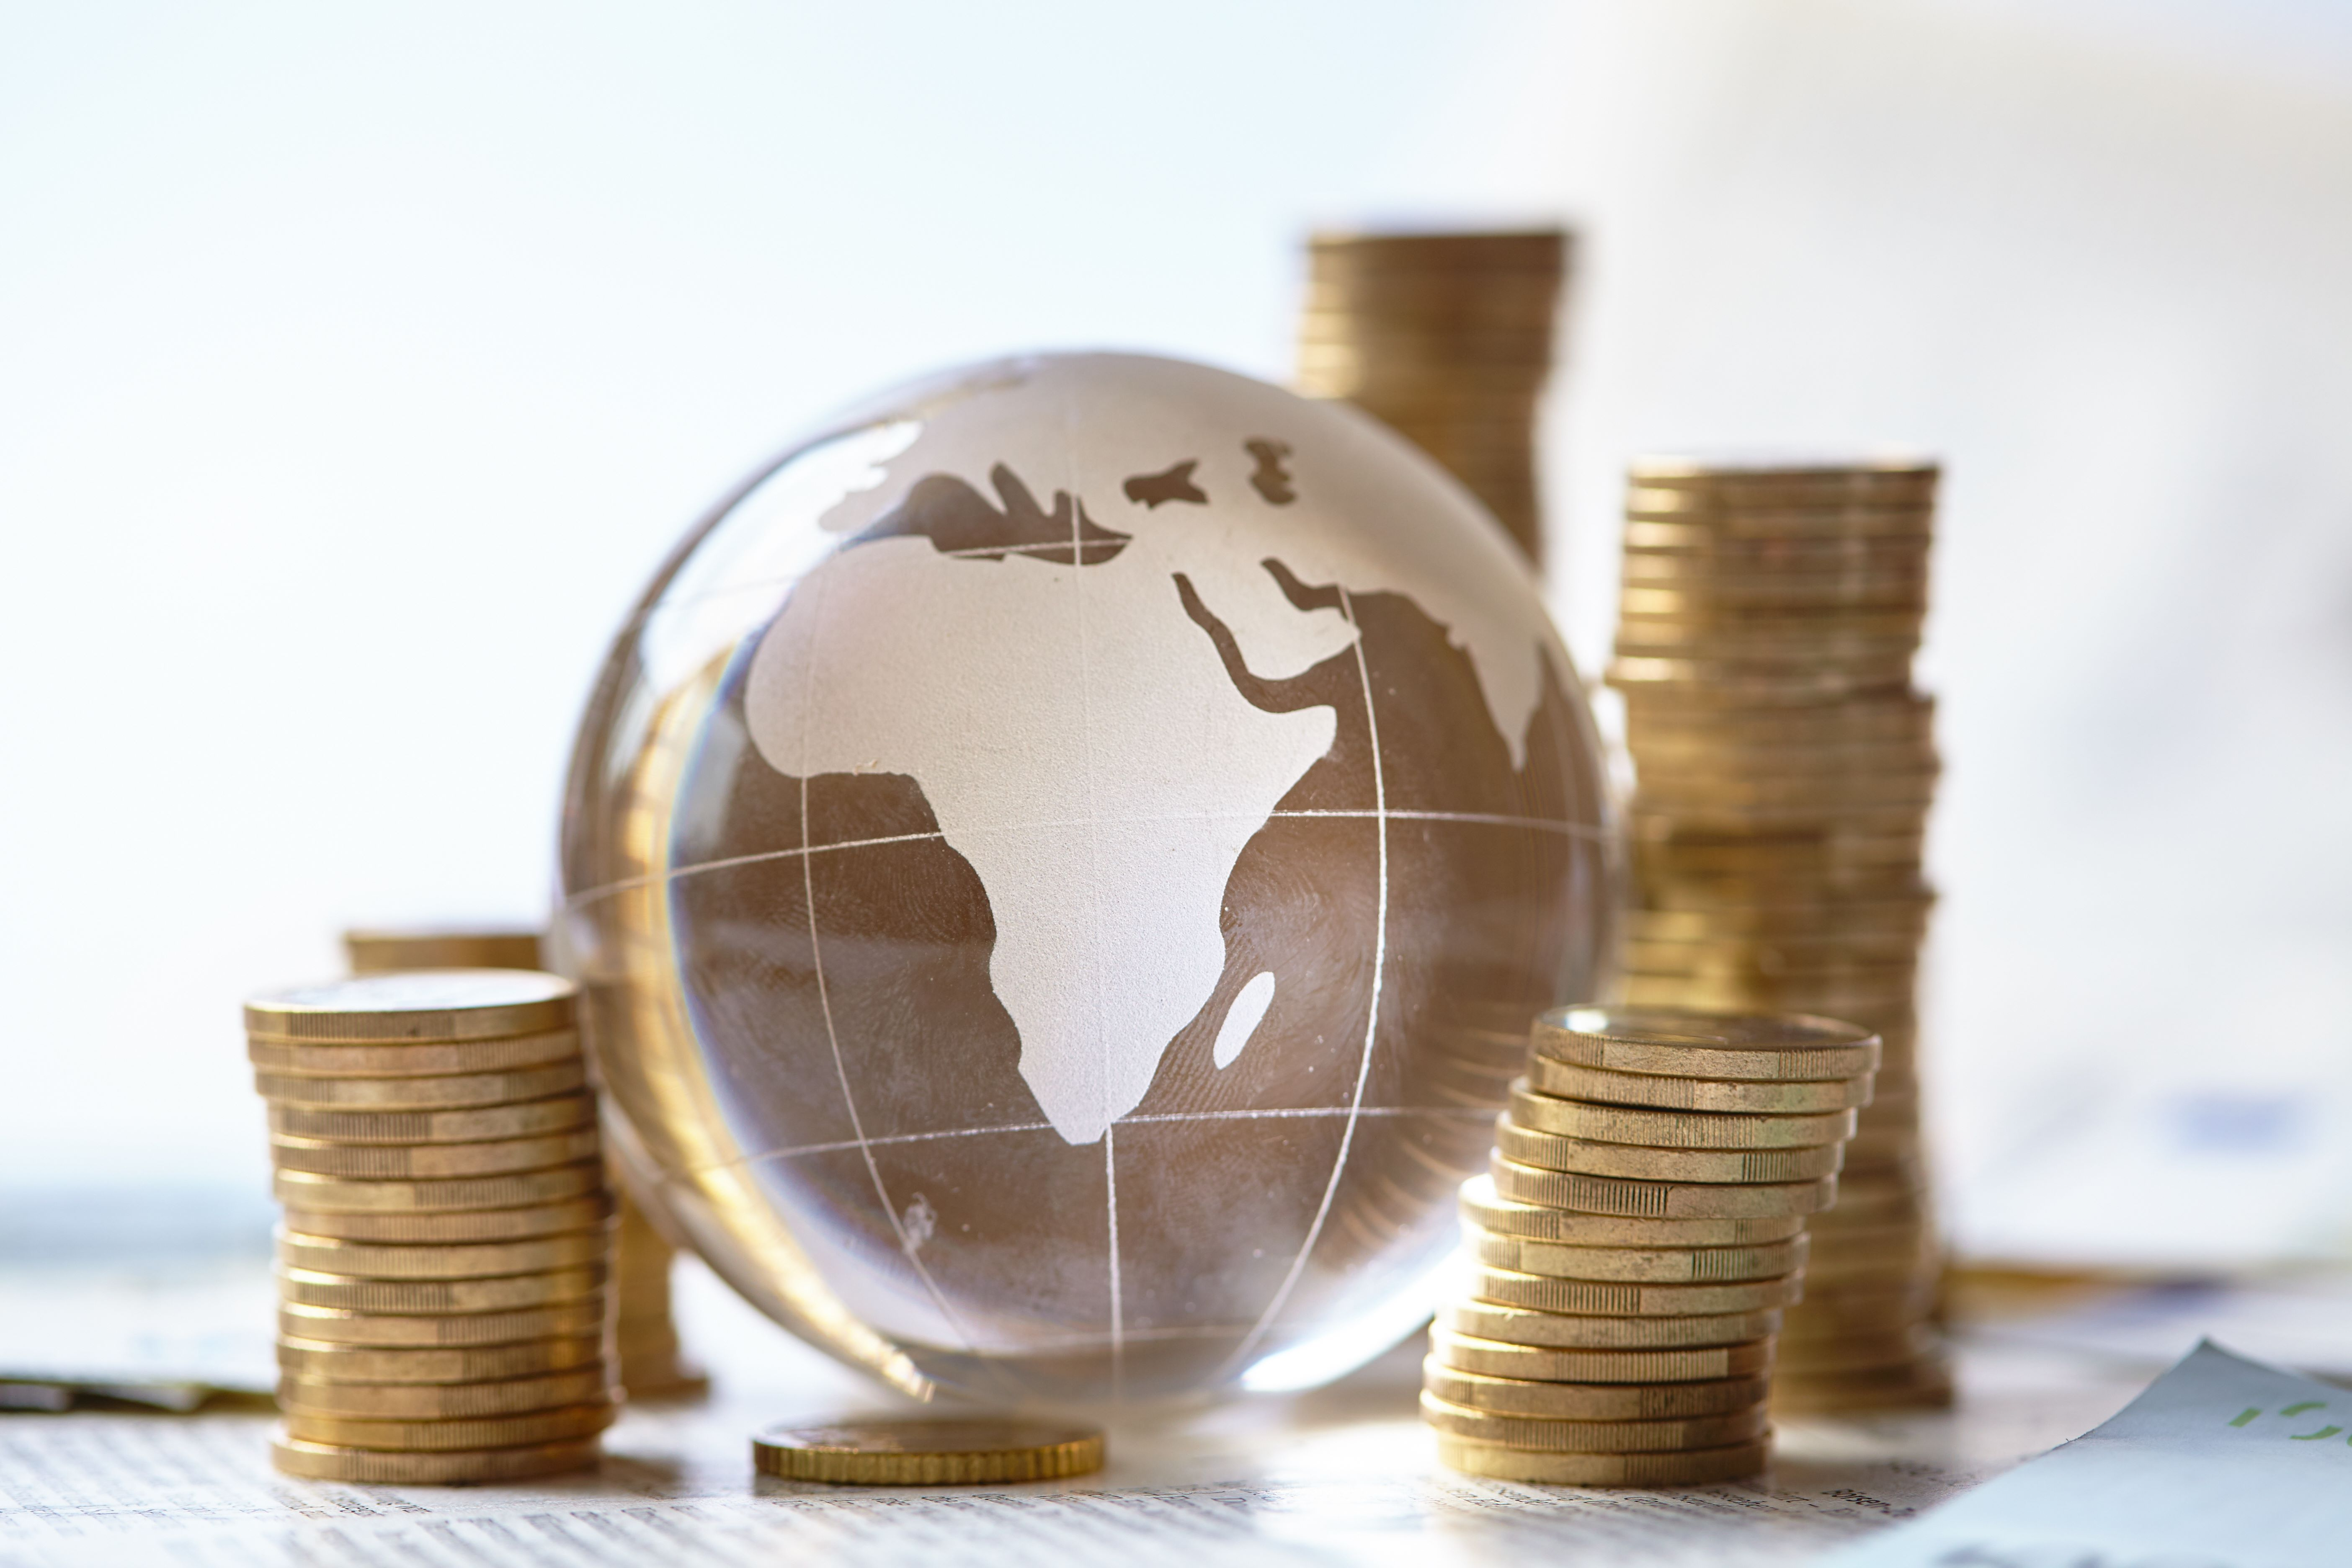 Coins piled around a globe featuring Africa